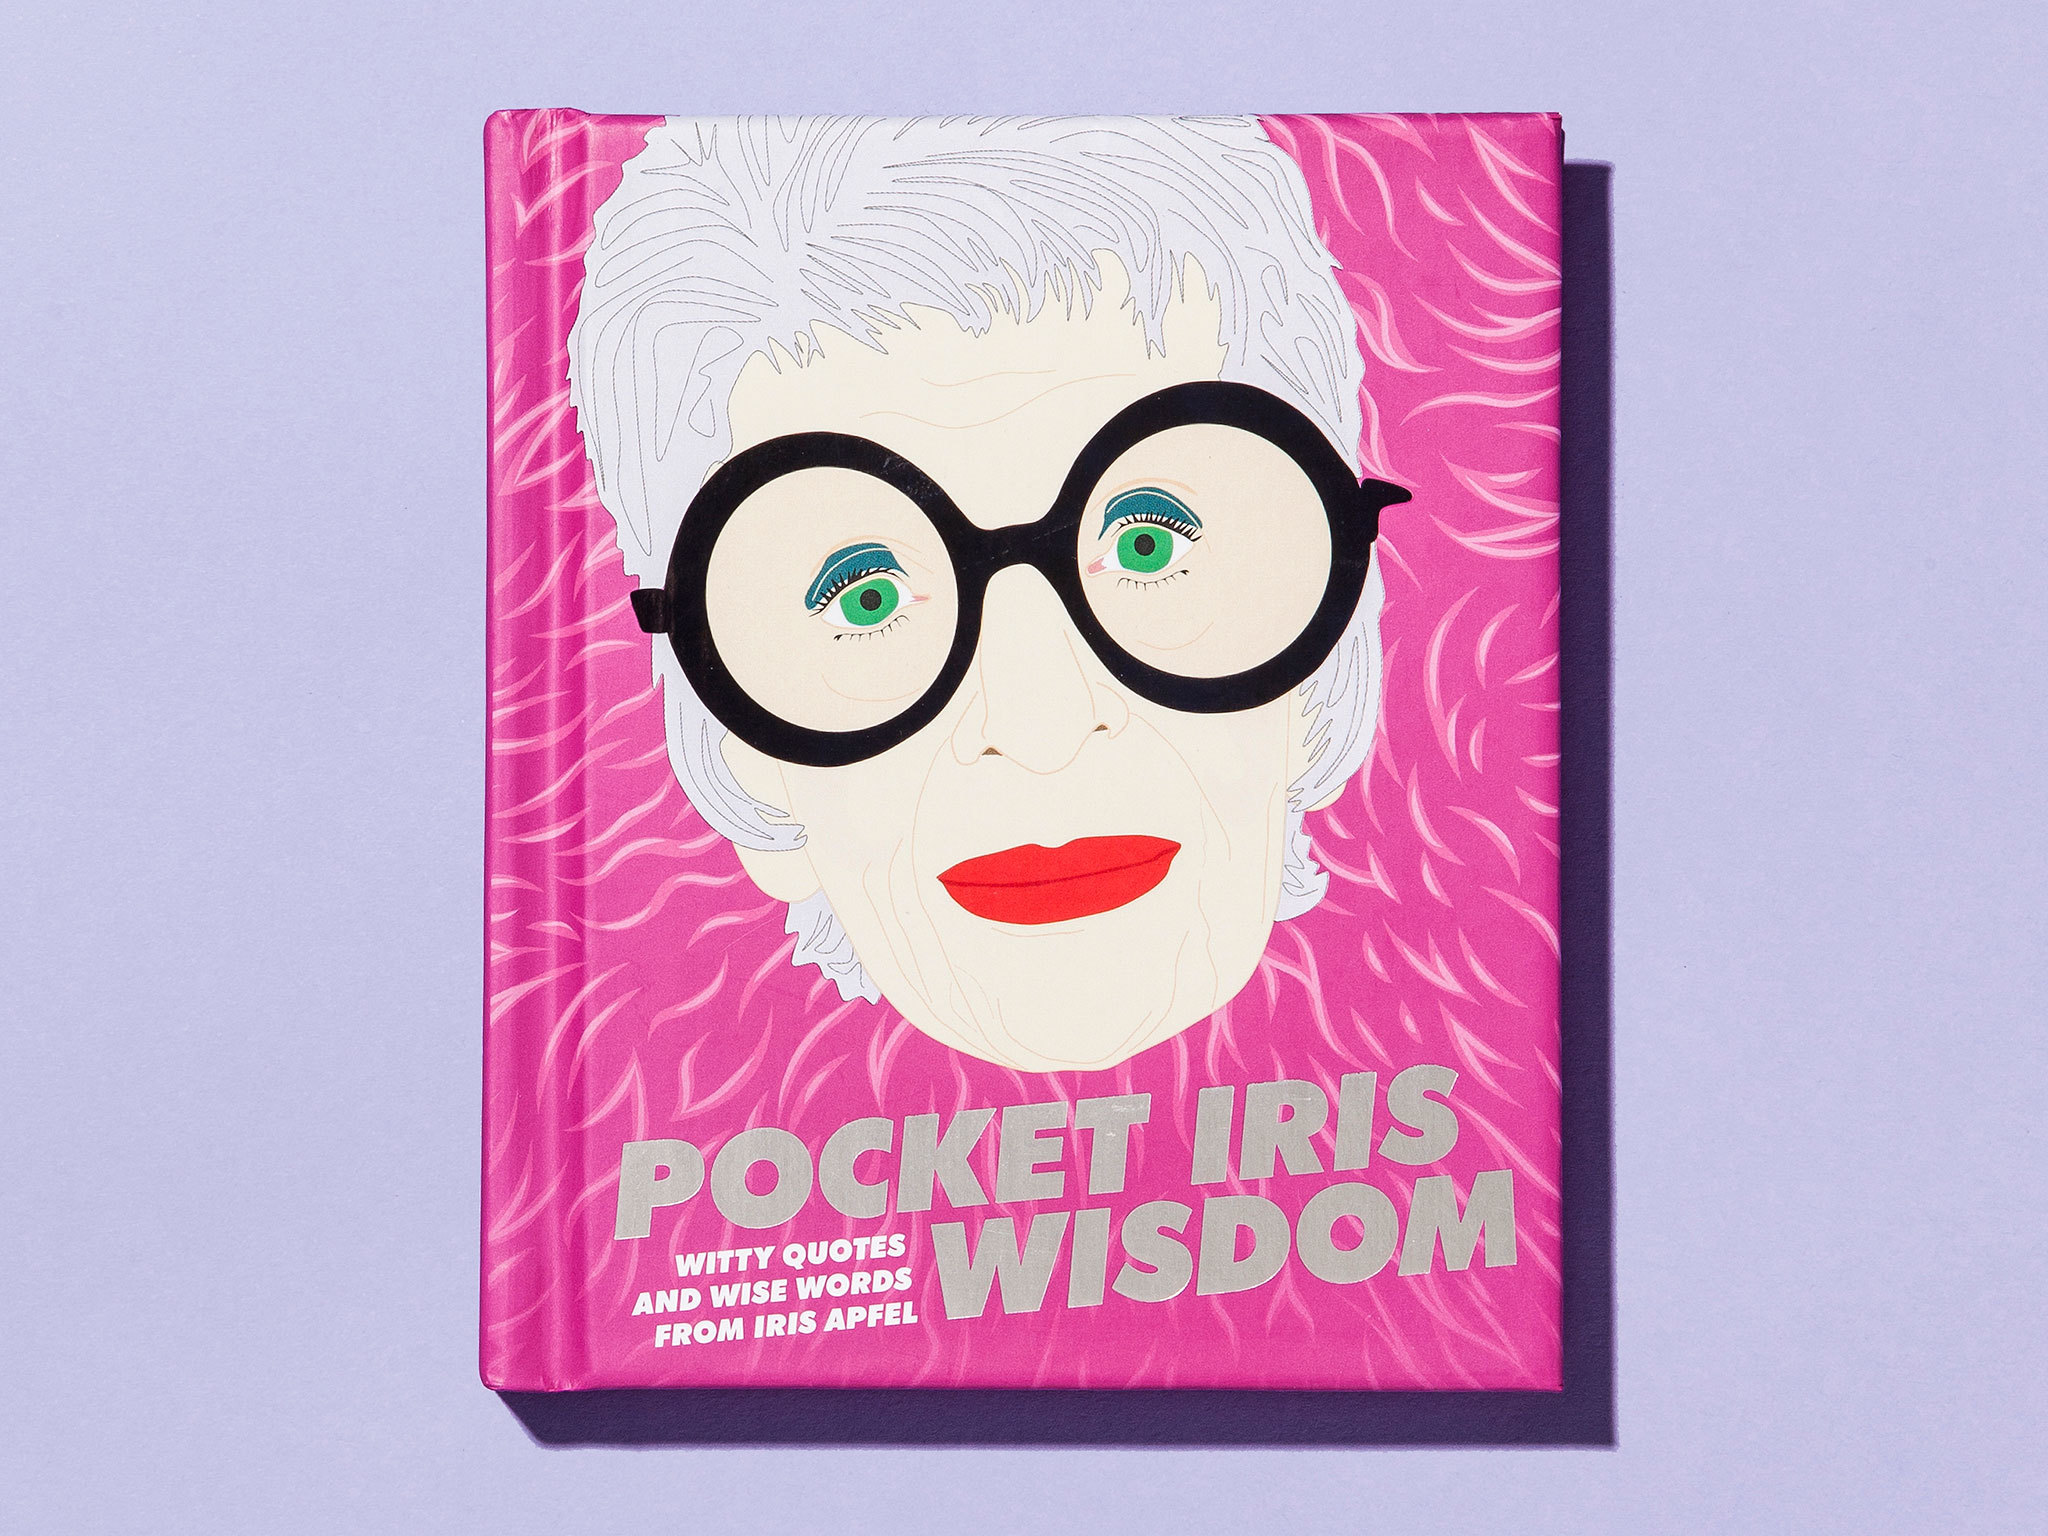 'Pocket Iris Wisdom: Witty Quotes and Wise Words from Iris Apfel'